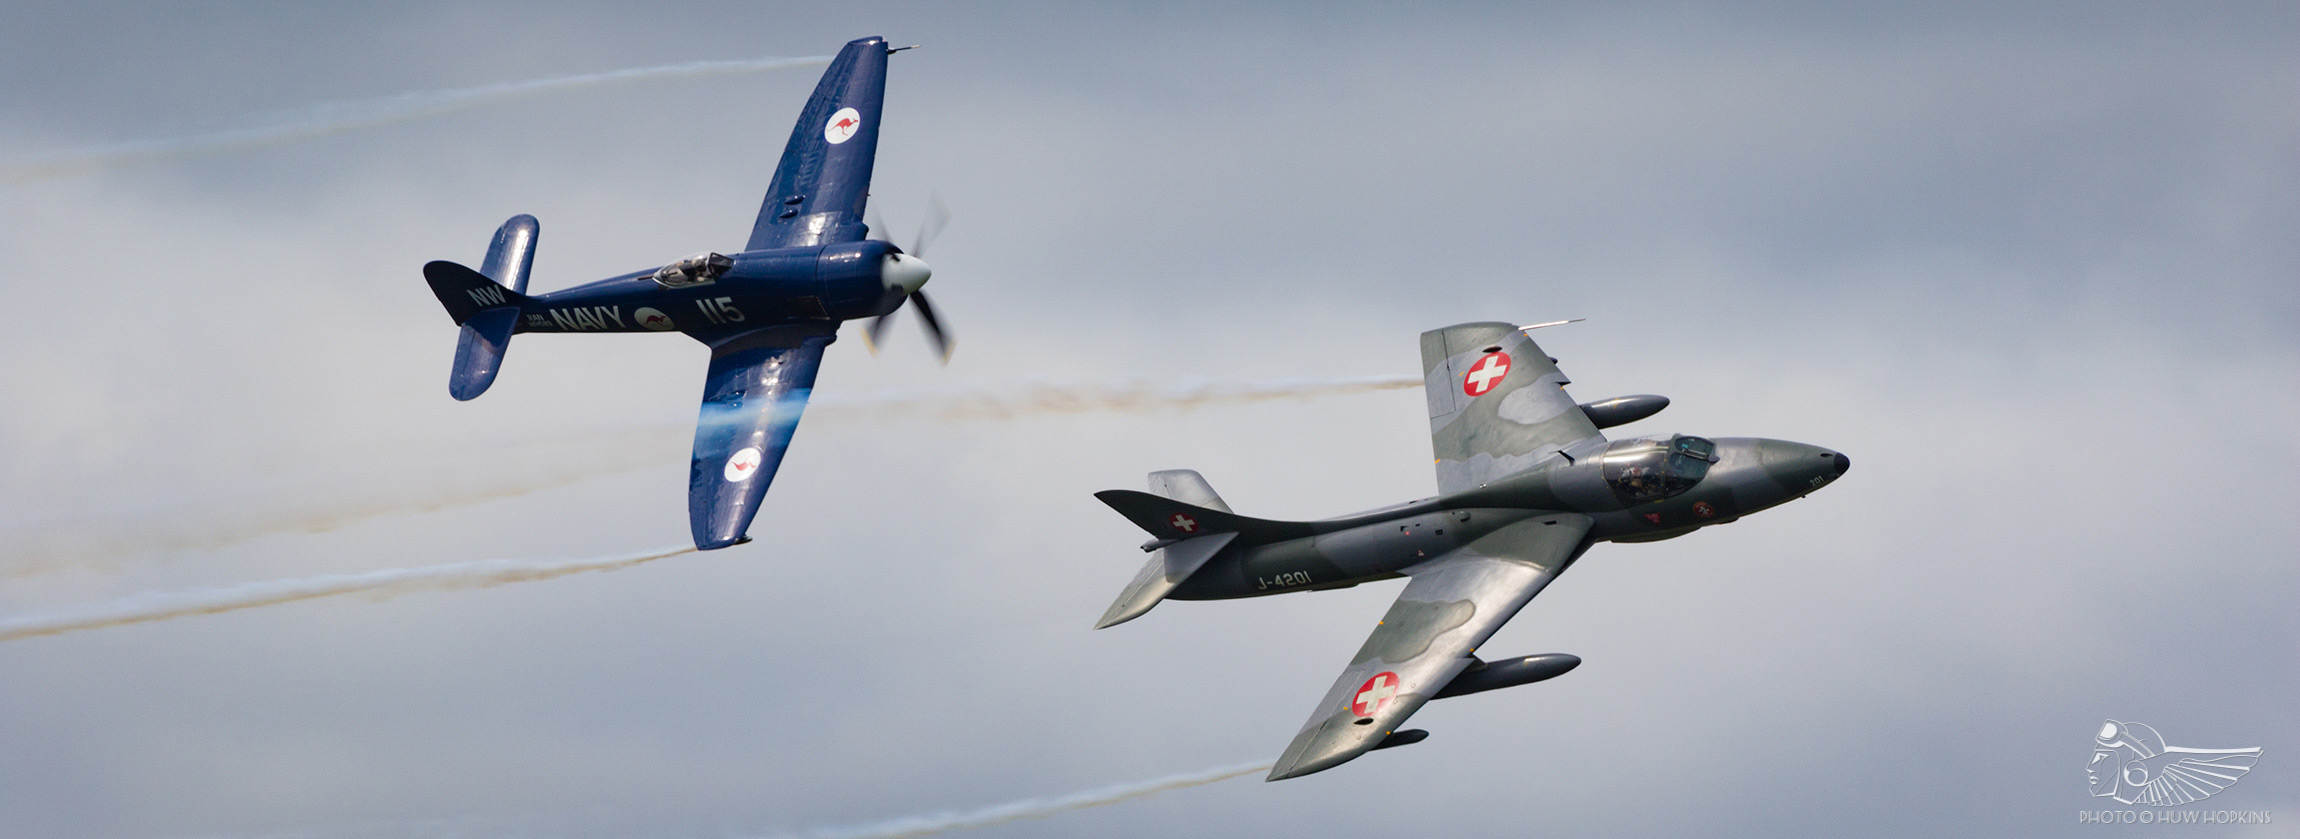 La Ferté-Alais celebrates aviation's diversity